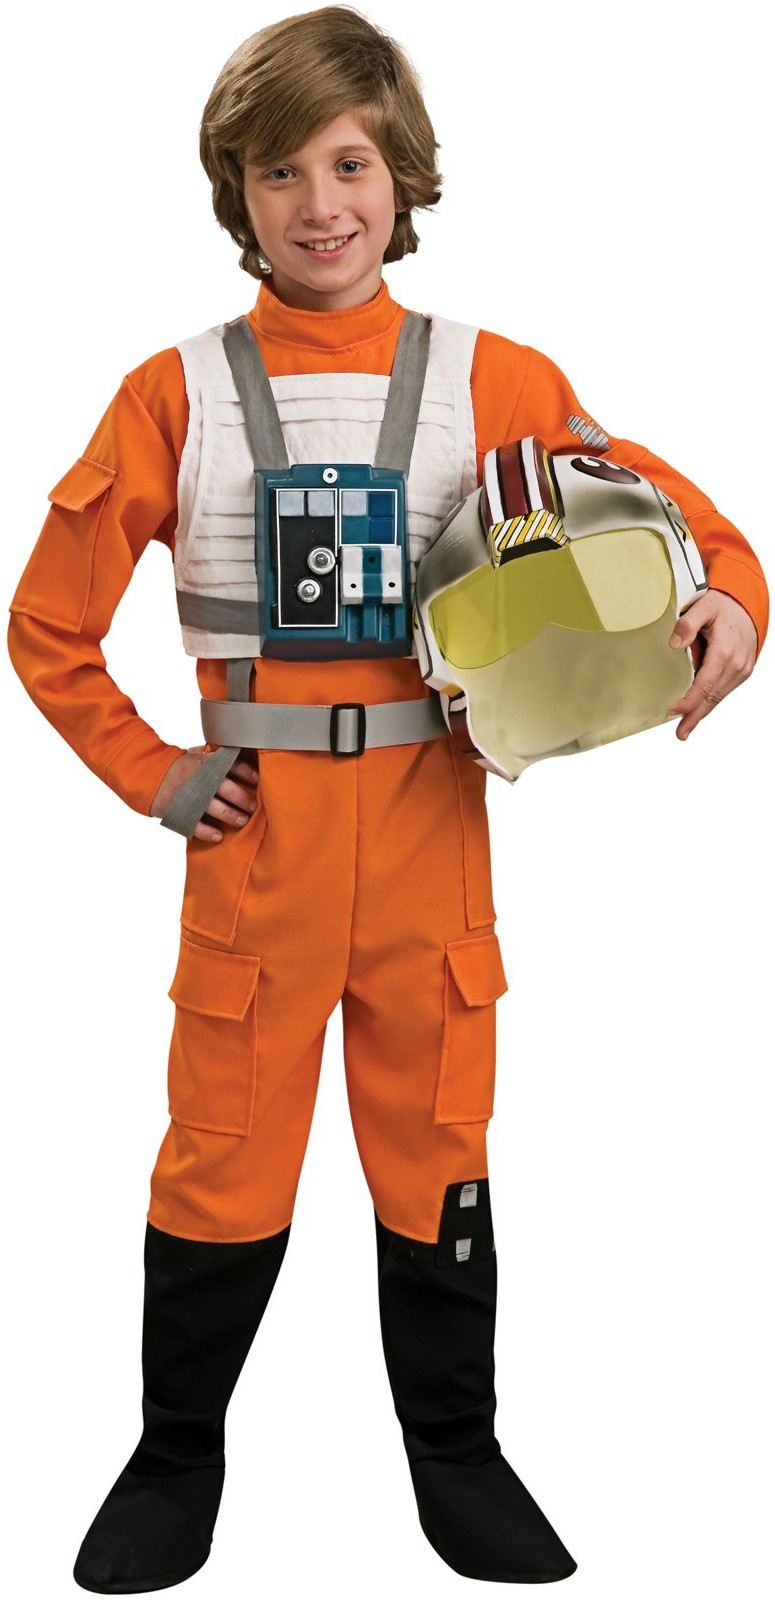 Star Wars X-Wing Fighter Pilot Child Costume.jpg  sc 1 st  Costumes.com.au & Star Wars X-Wing Fighter Pilot Child Costume | Costumes.com.au